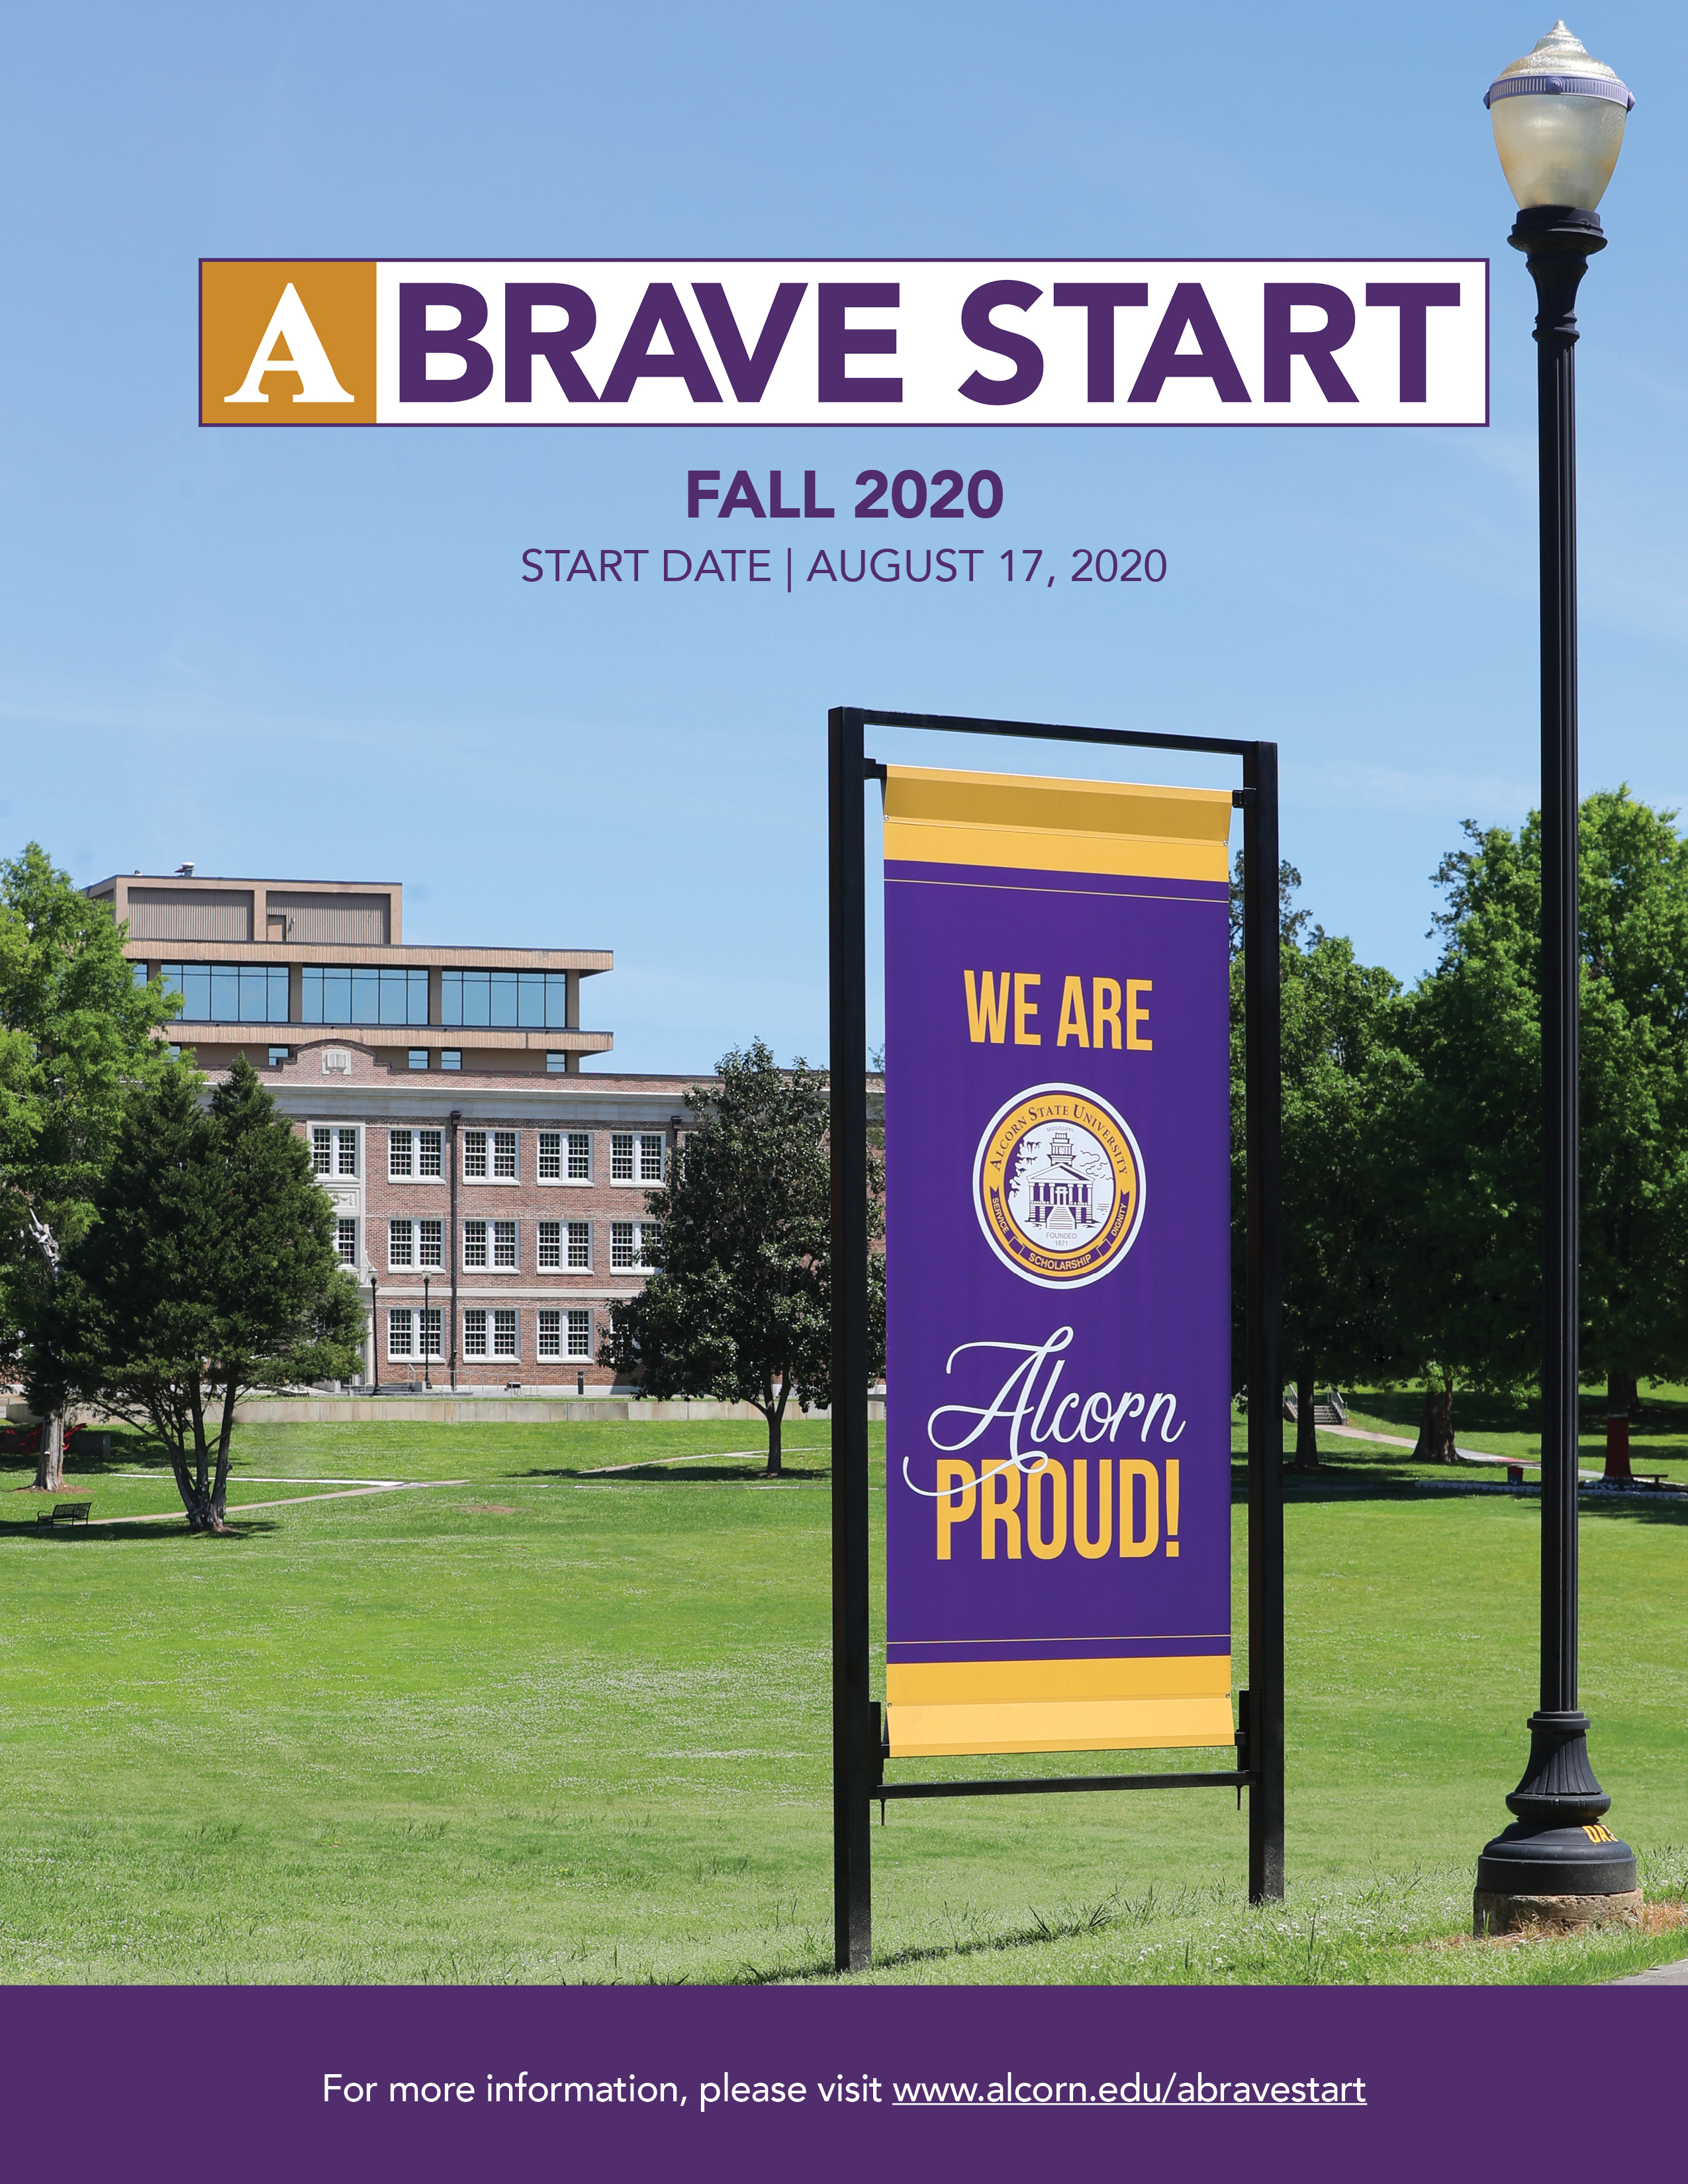 (A Brave Start. Fall 2020. Start Date August 17, 2020. (Picture of Bowles Hall with sign displaing